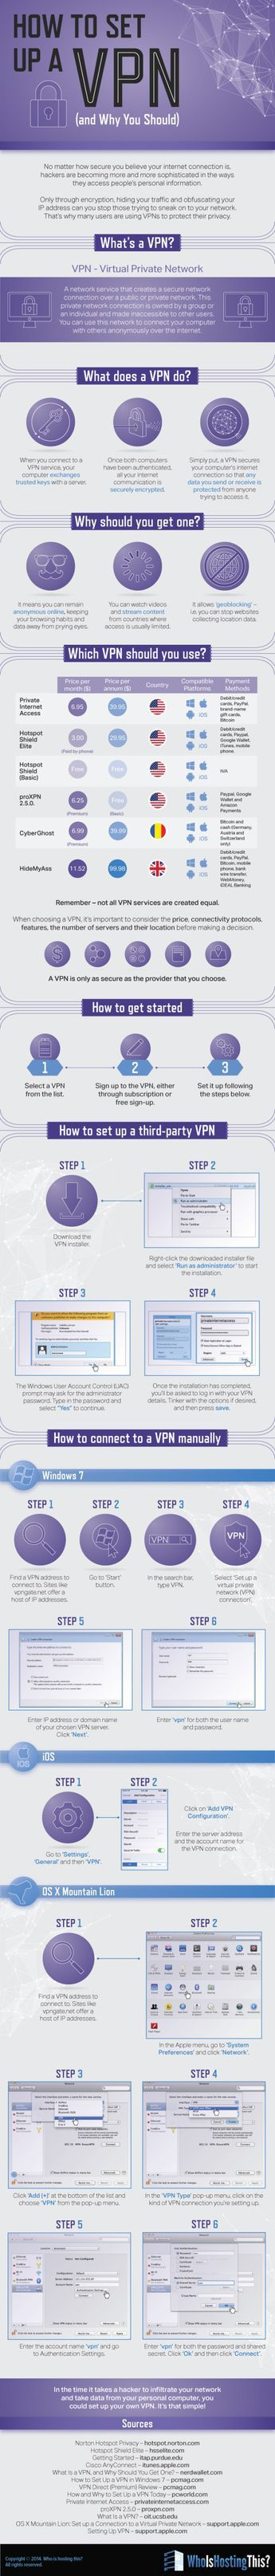 18 Best Technology Images On Pinterest Computer Micro Usb Wiring Diagram 19 Emprendedor How To Set Up A Vpn And Why You Should If Care About Privacy